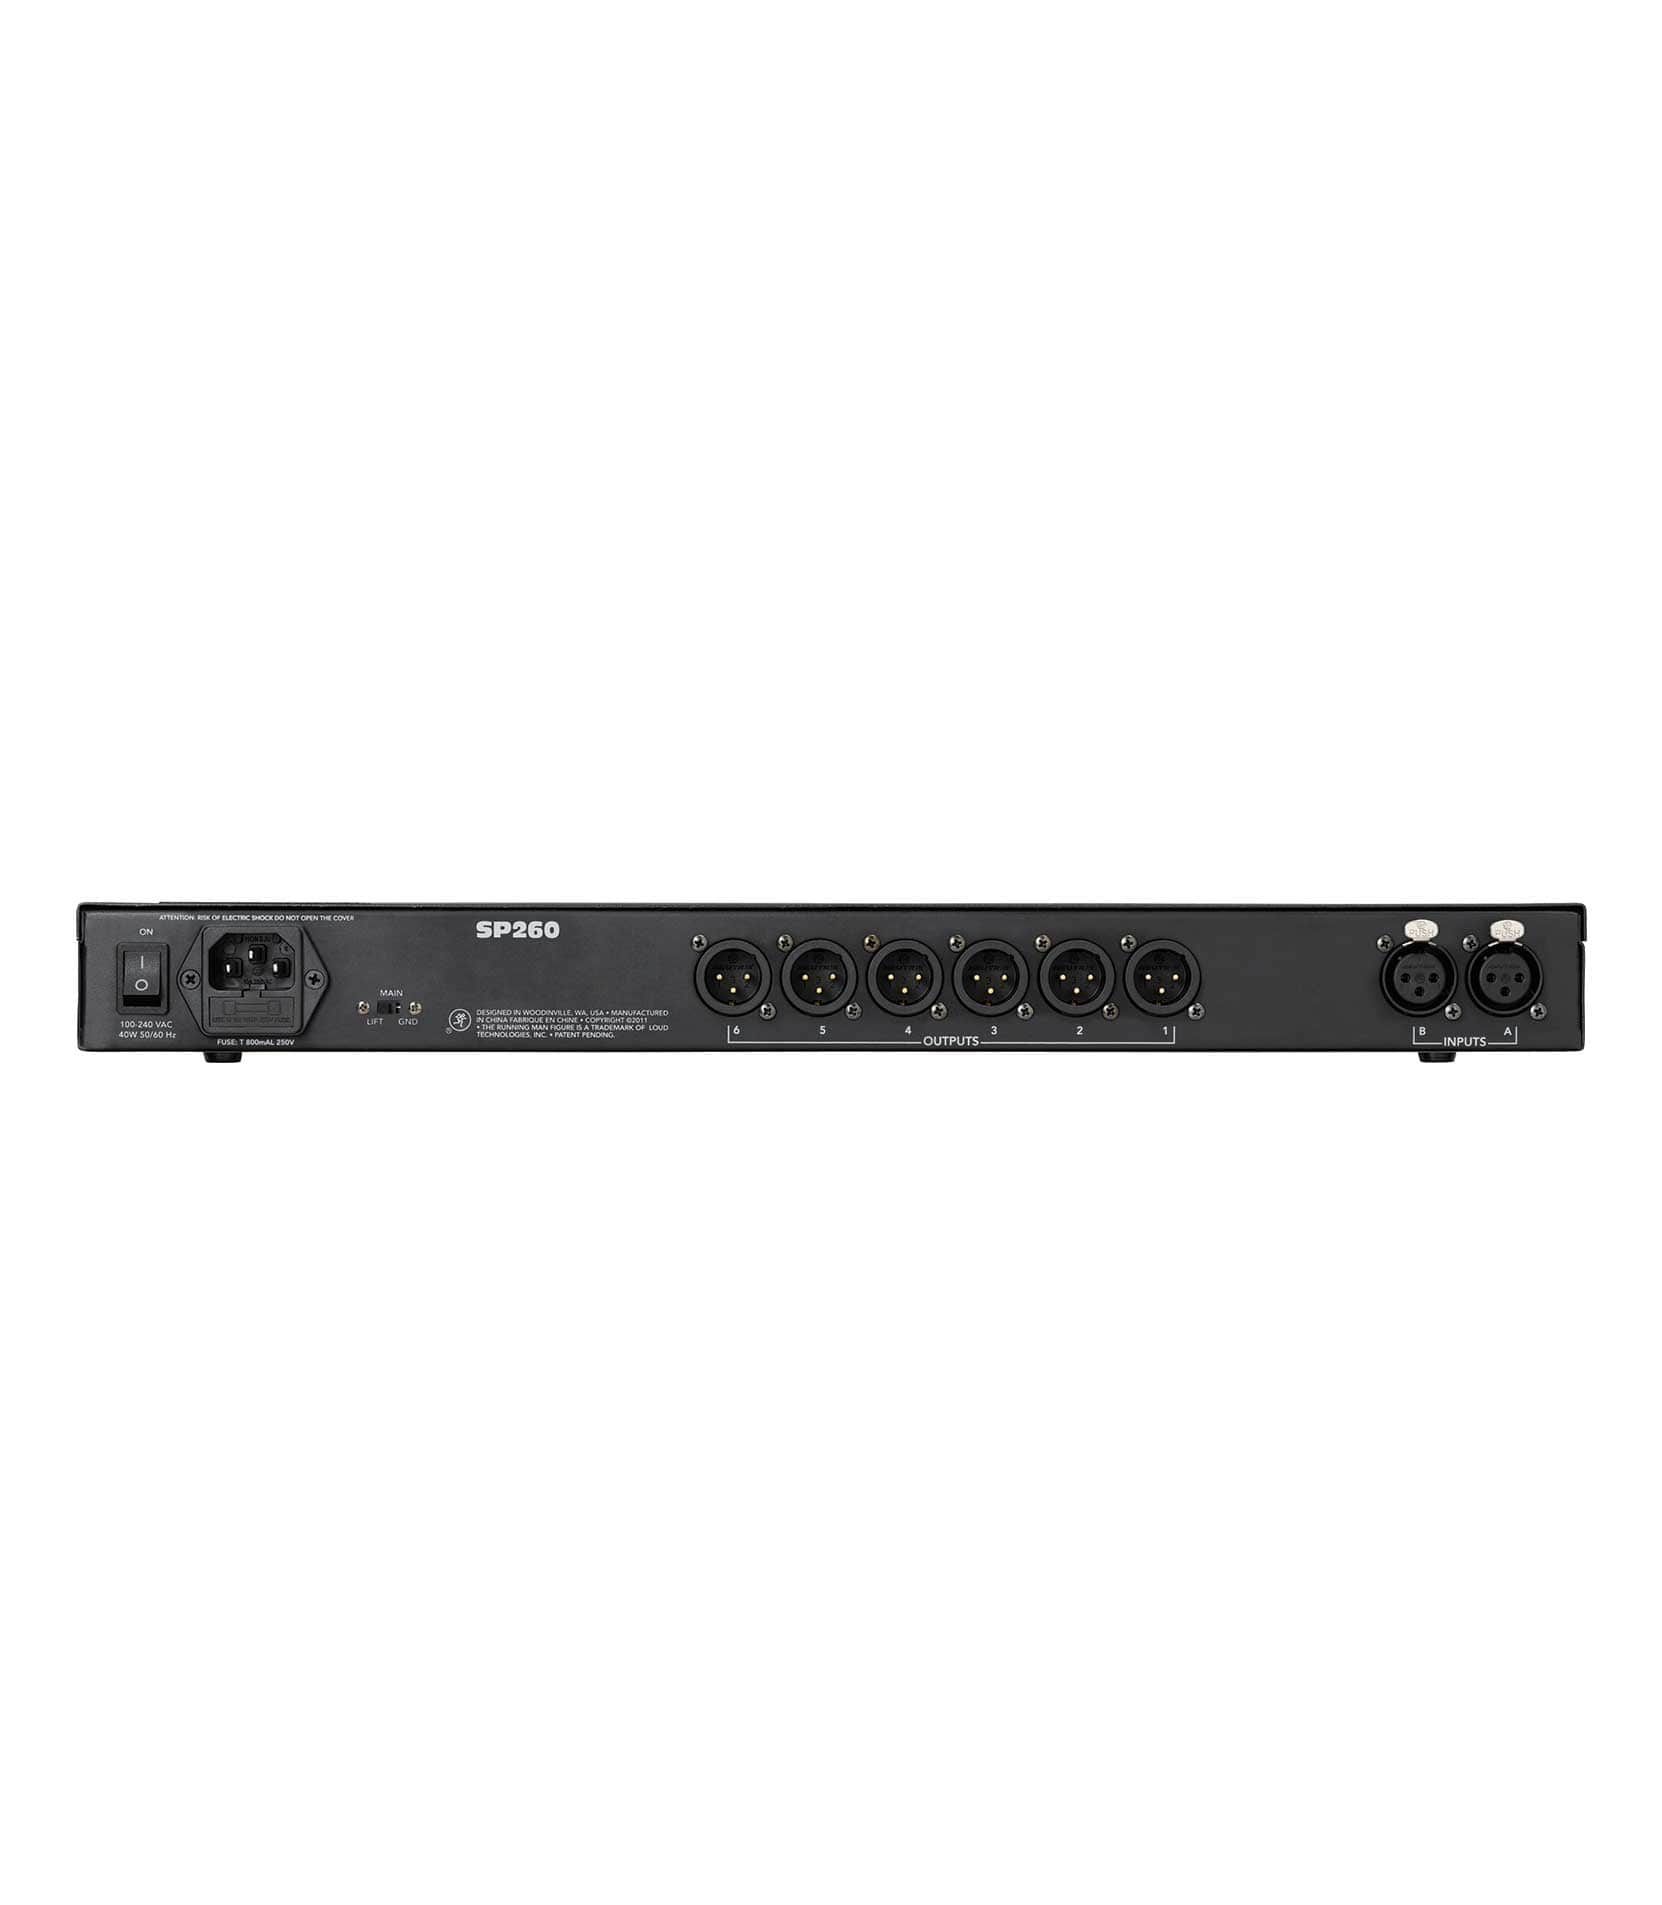 SP260 2x6 Loudspeaker System Processor - Buy Online